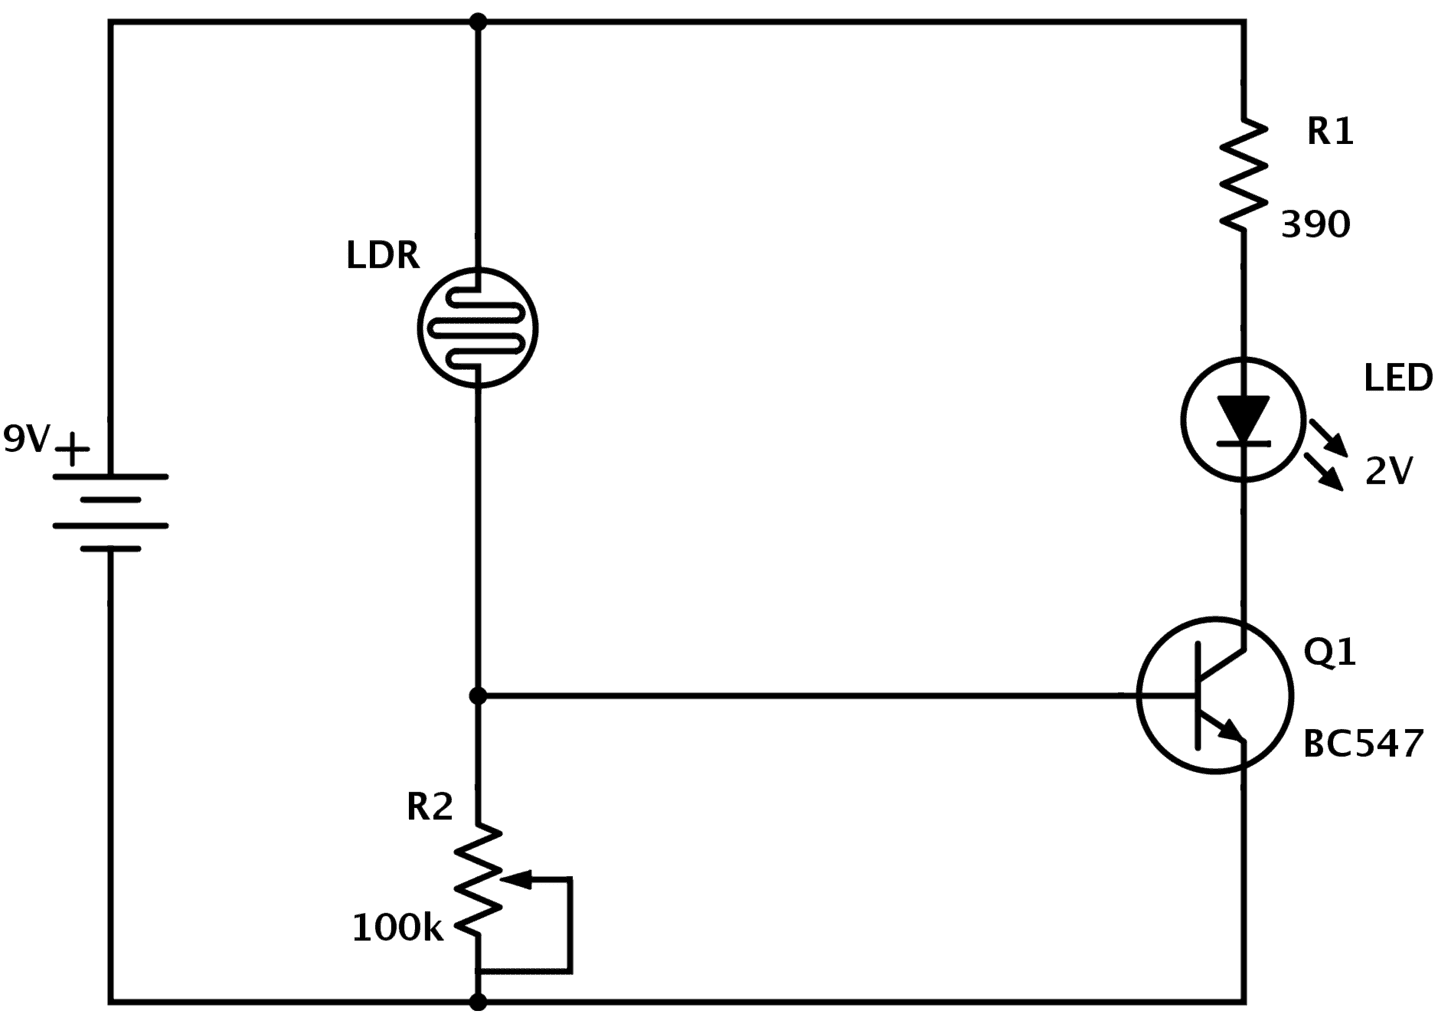 LDR circuit improved